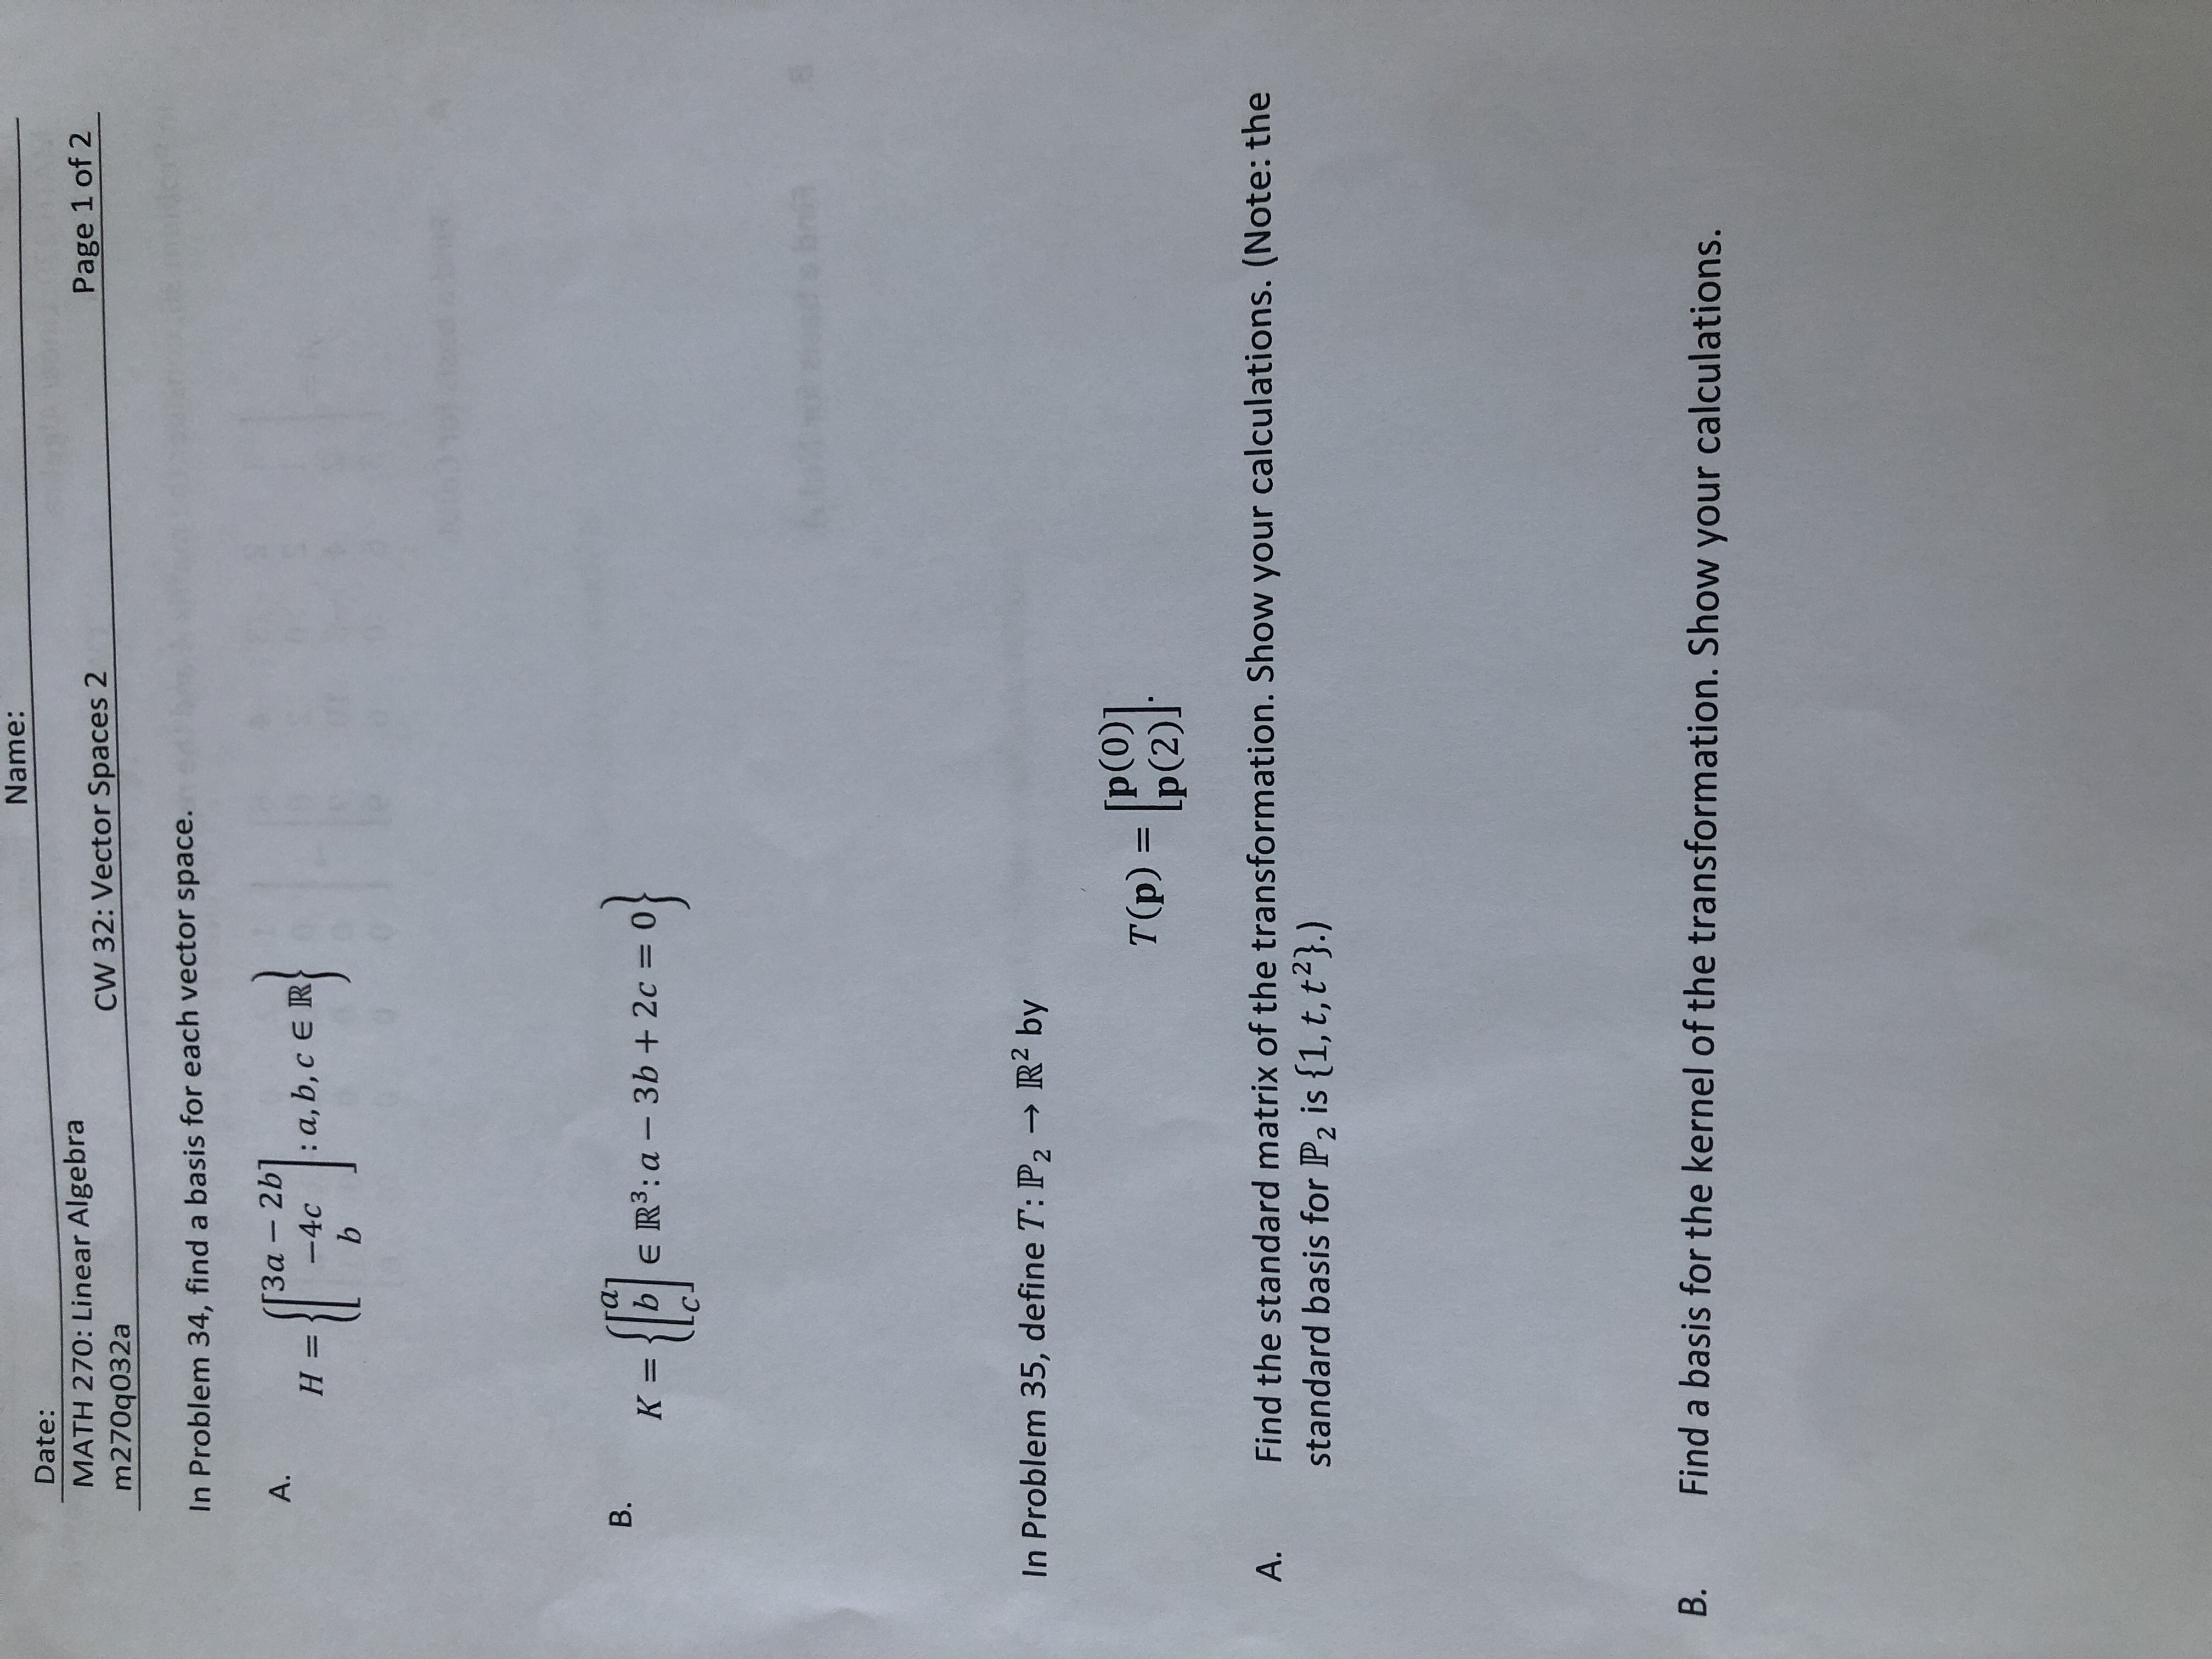 Name: Date: MATH 270: Linear Algebra m270q032a Page 1 of 2 CW 32: Vector Spaces 2 In Problem 34, find a basis for each vector space. heen 3α-2b] -4c a, b, c E R A. H = b B. K =|b E R3:a 3b + 2c= useobrin In Problem 35, define T: P2R2 by p(0)] T(p) = Ip(2) Find the standard matrix of the transformation. Show your calculations. (Note: the standard basis for P2 is {1, t, t2}.) A. Find a basis for the kernel of the transformation. Show your calculations. B.